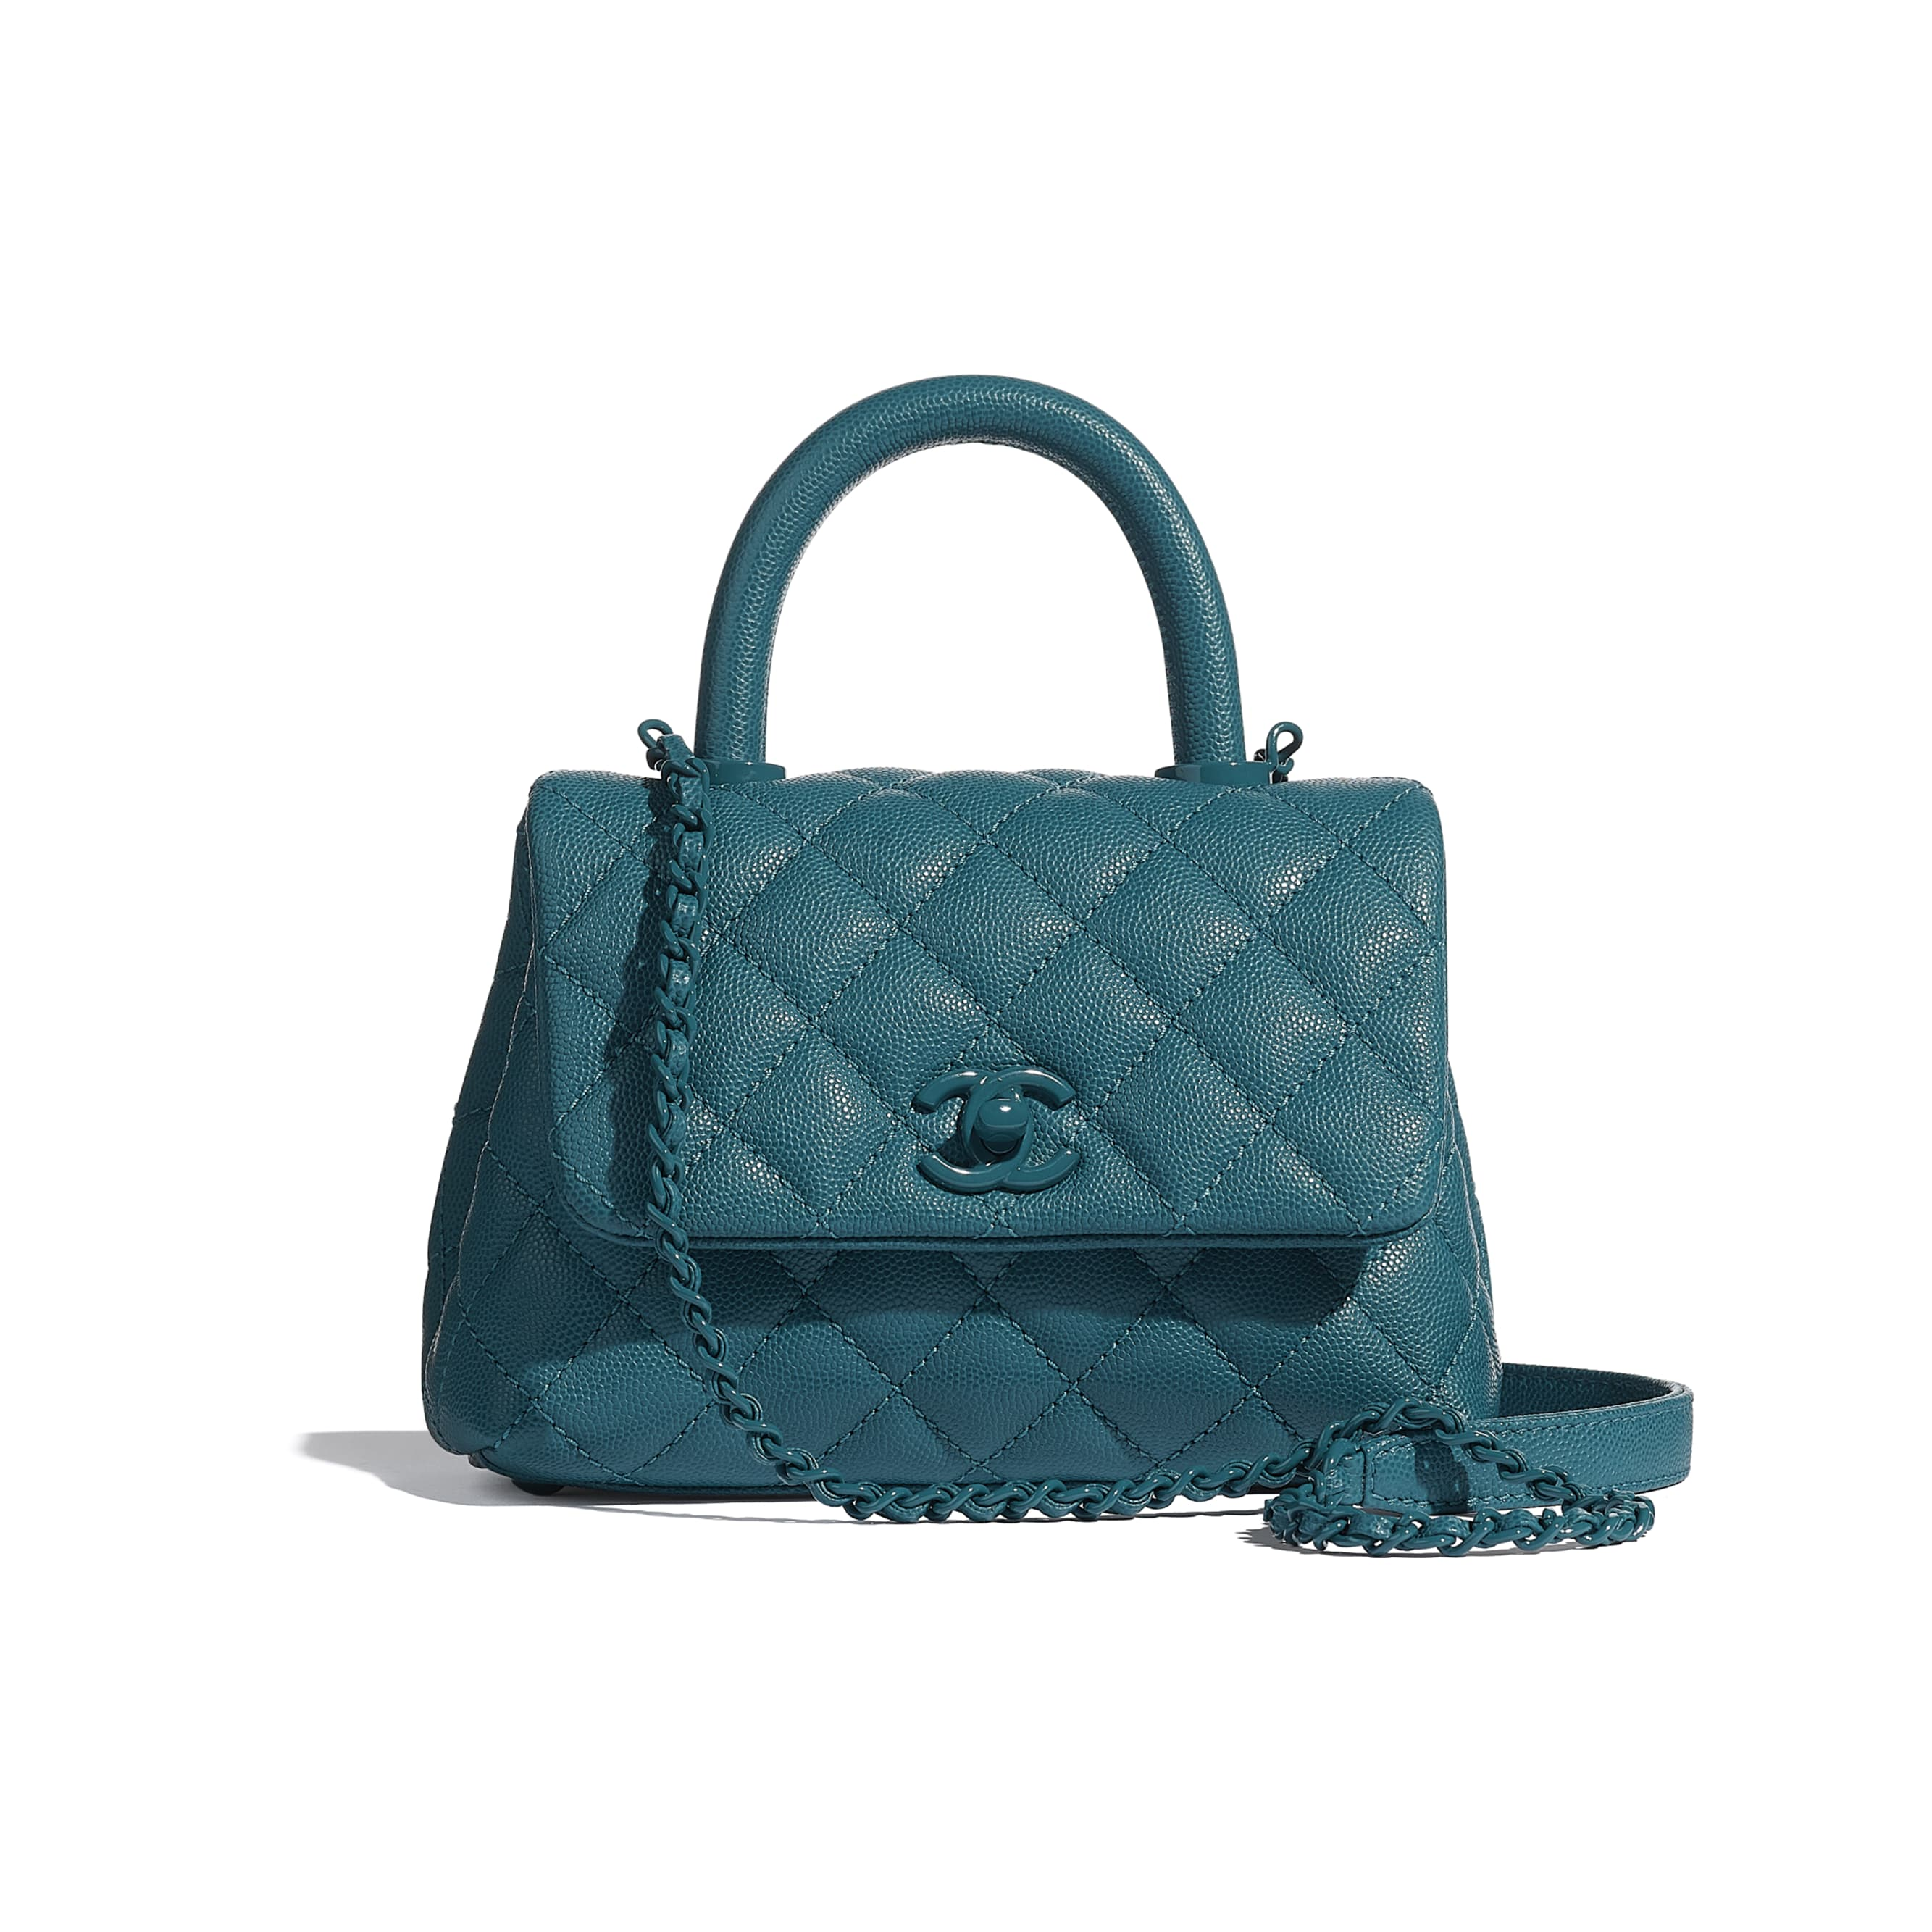 Mini Flap Bag with Handle - Turquoise - Grained Calfskin & Lacquered Metal - CHANEL - Default view - see standard sized version